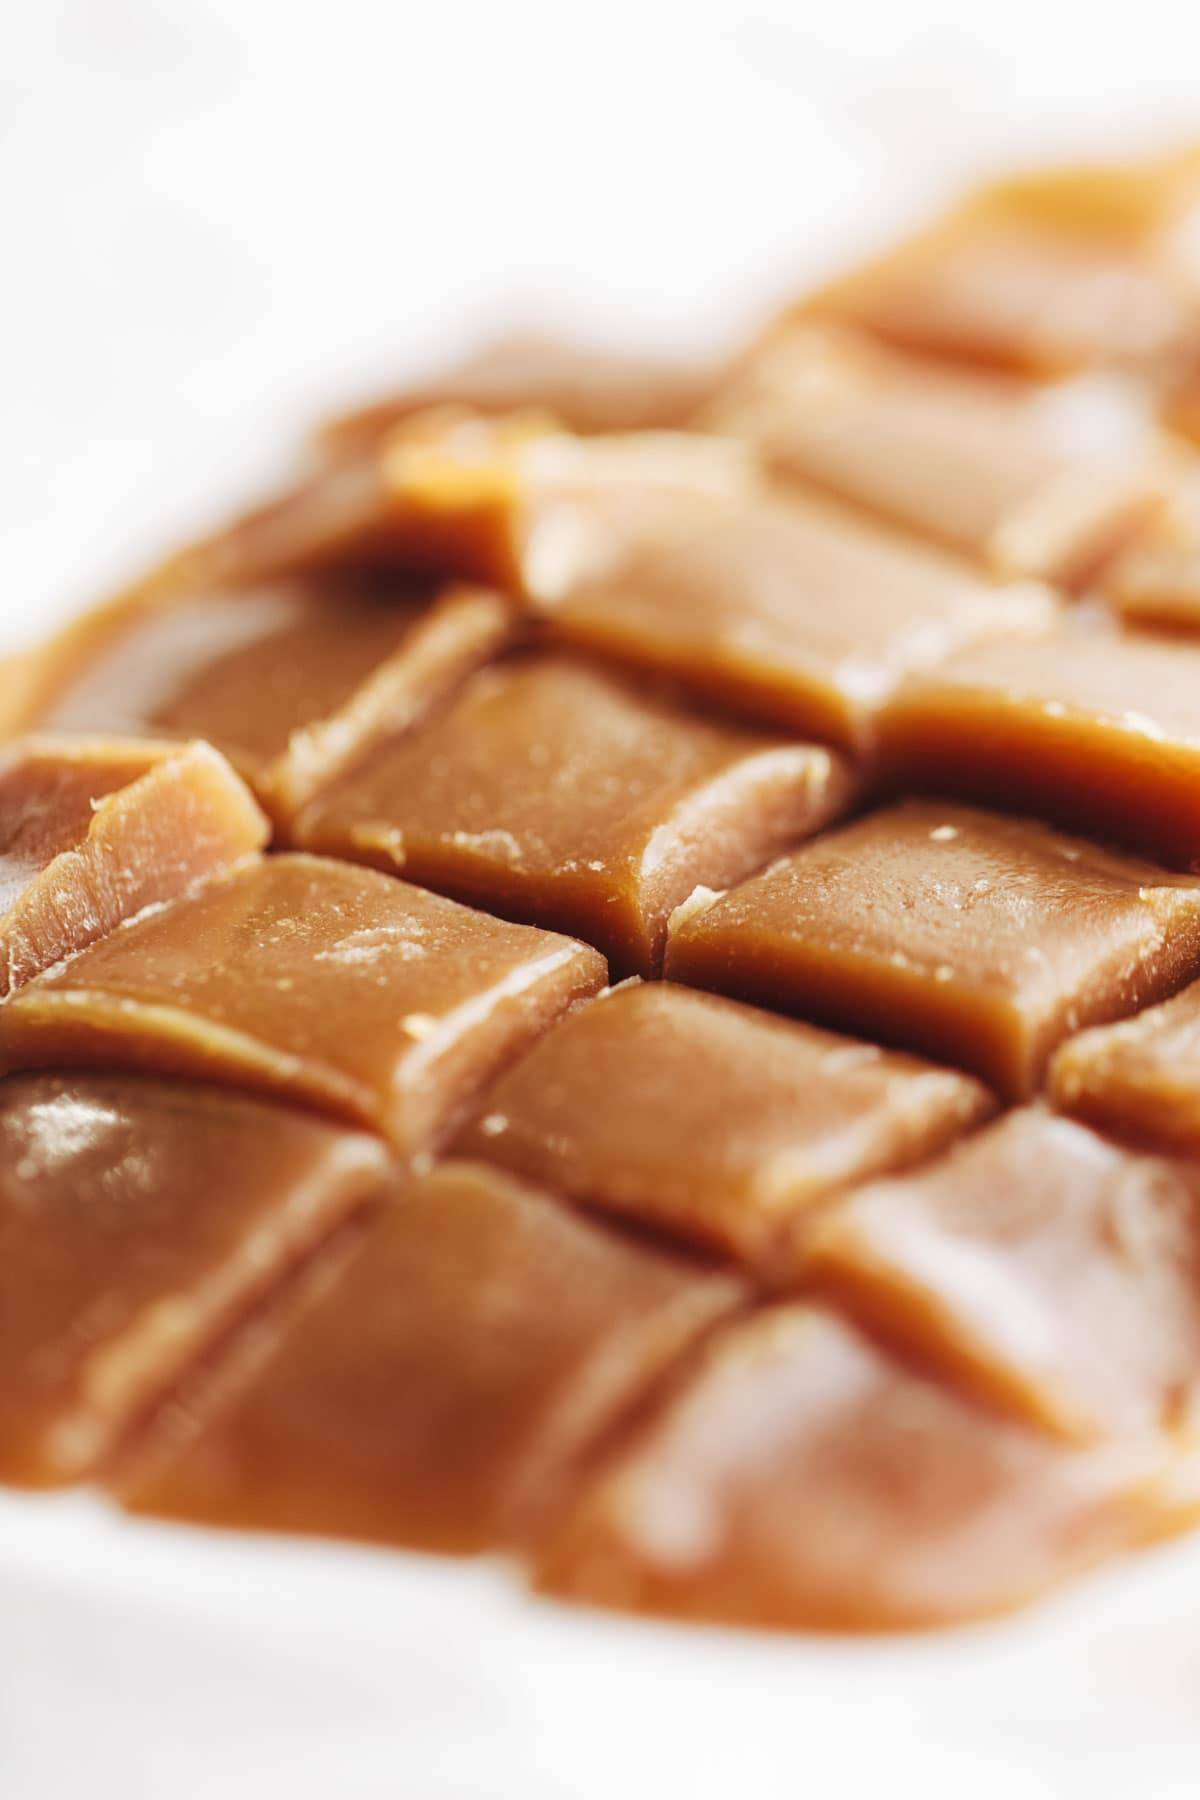 Closeup of salted caramel pieces.